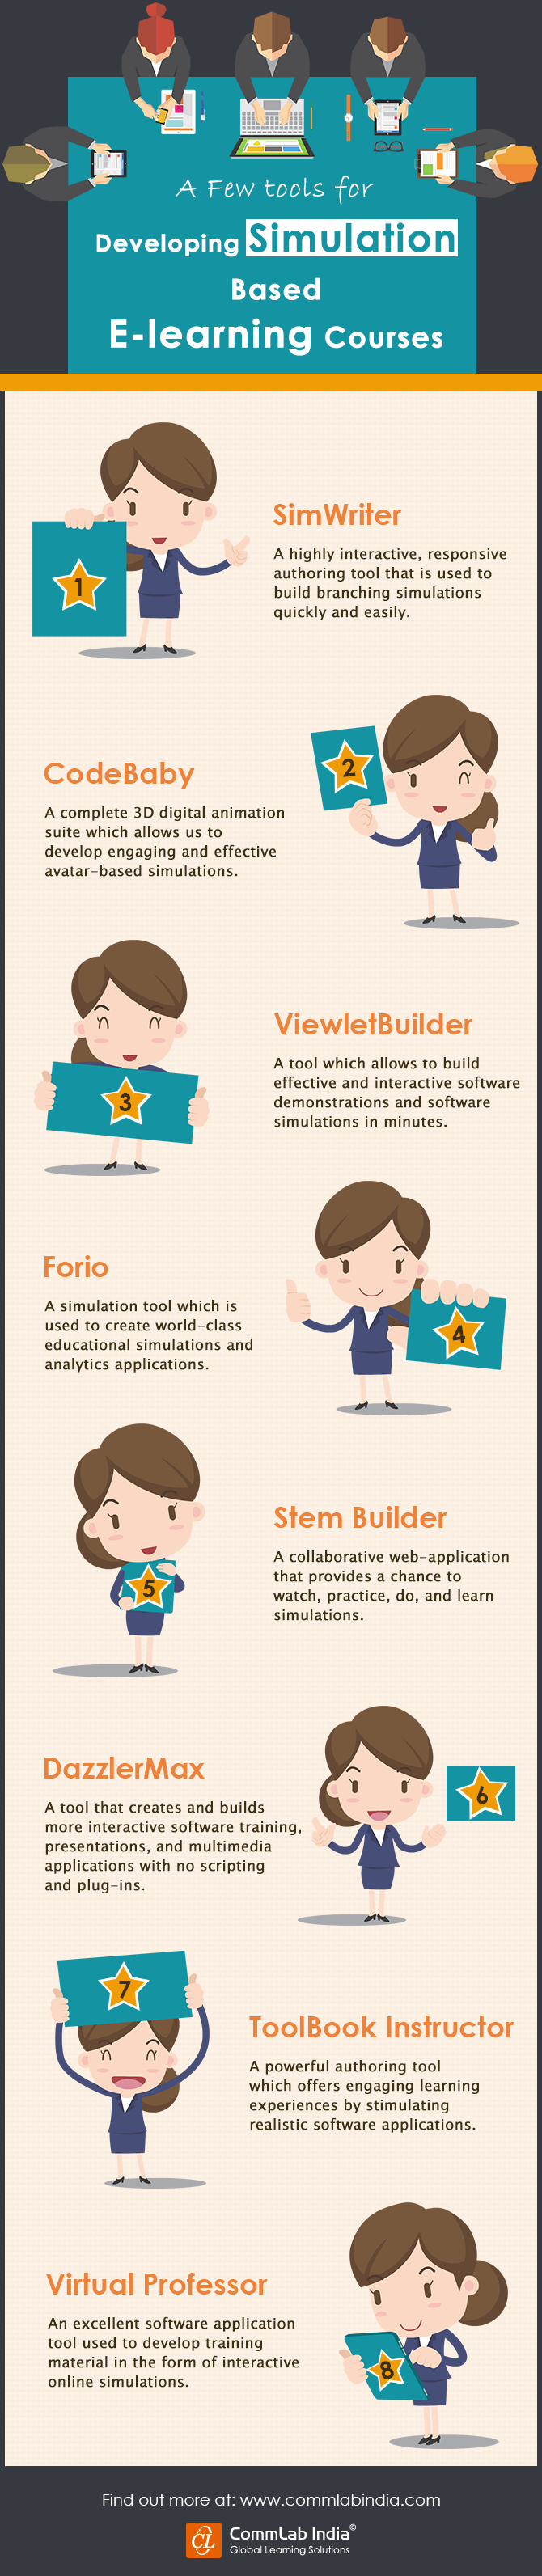 A Few Tools for Developing Simulations Based E-learning Courses [Infographic]